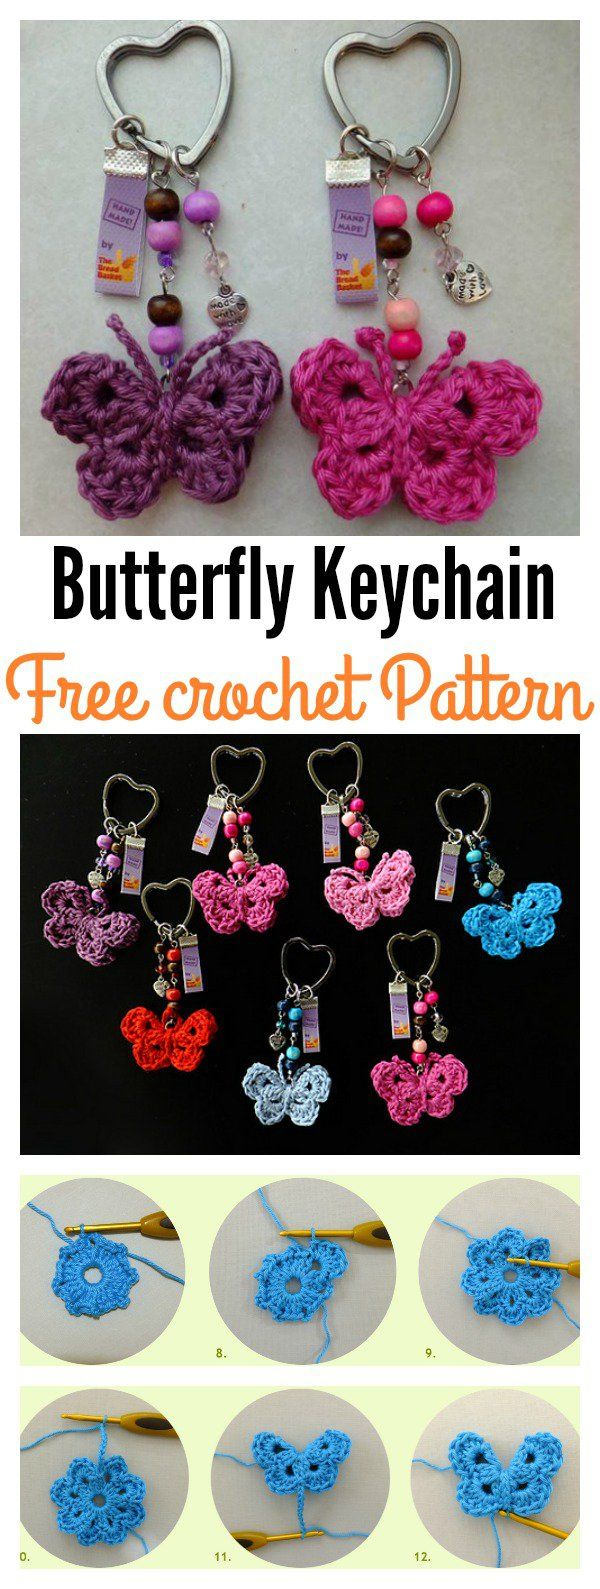 TamaraART: Direct link to free crochet butterfly keychain pattern